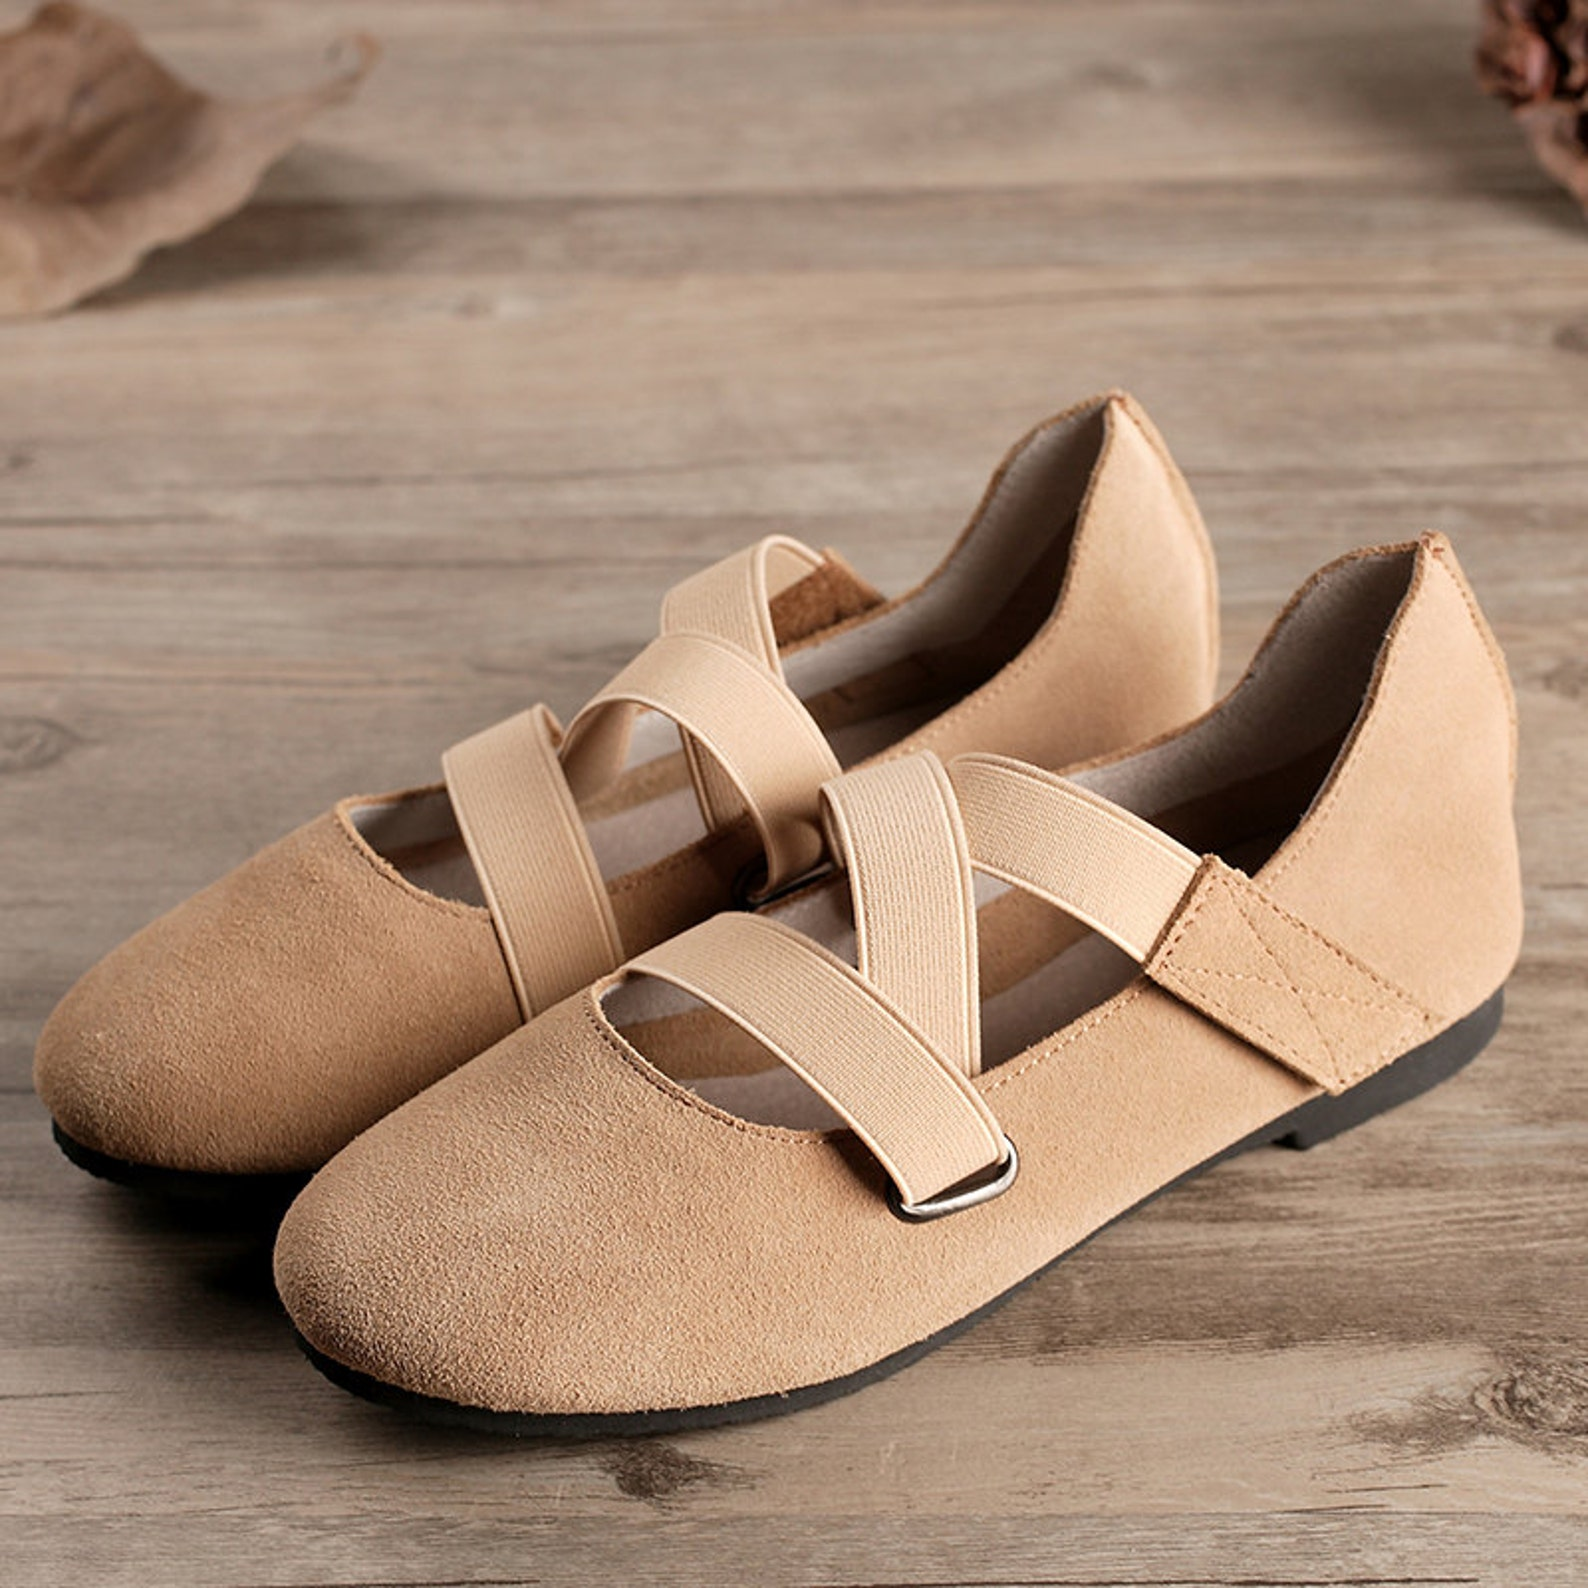 tan handmade ballet shoes,oxford women shoes, flat leather shoes, retro soft leather shoes, casual shoes